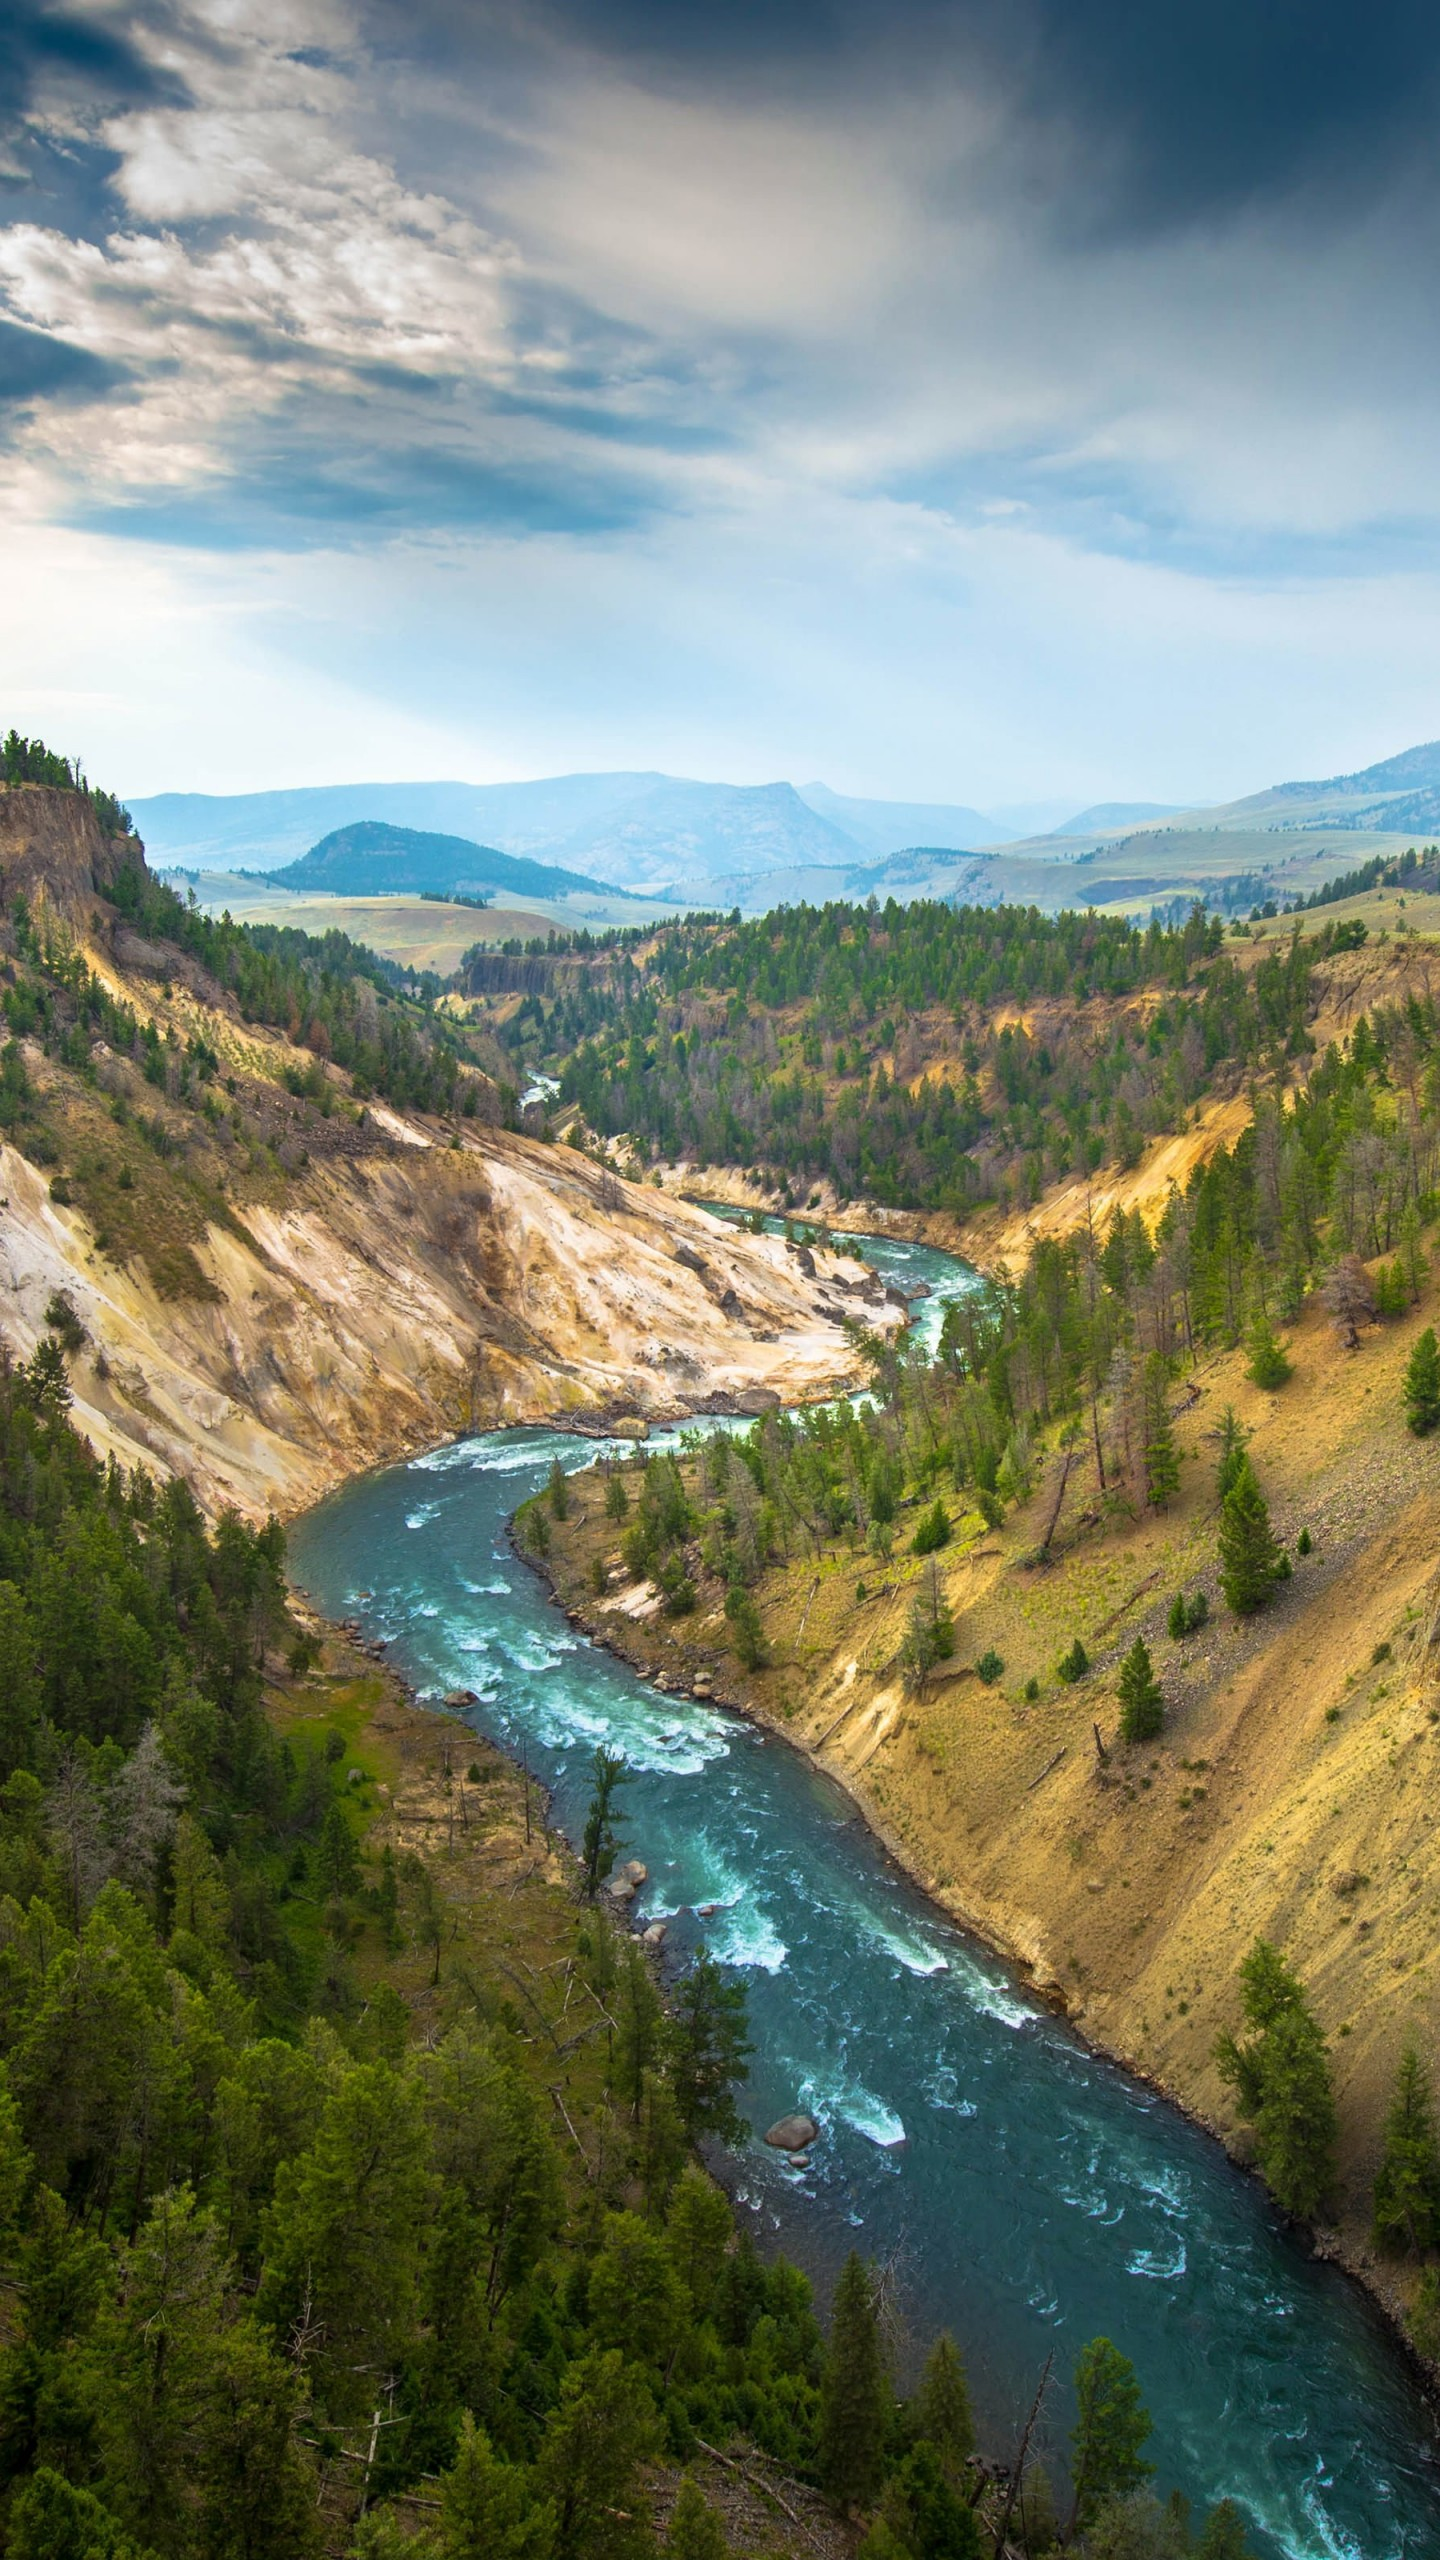 The River, Grand Canyon of Yellowstone National Park, USA Wallpaper for Google Nexus 6